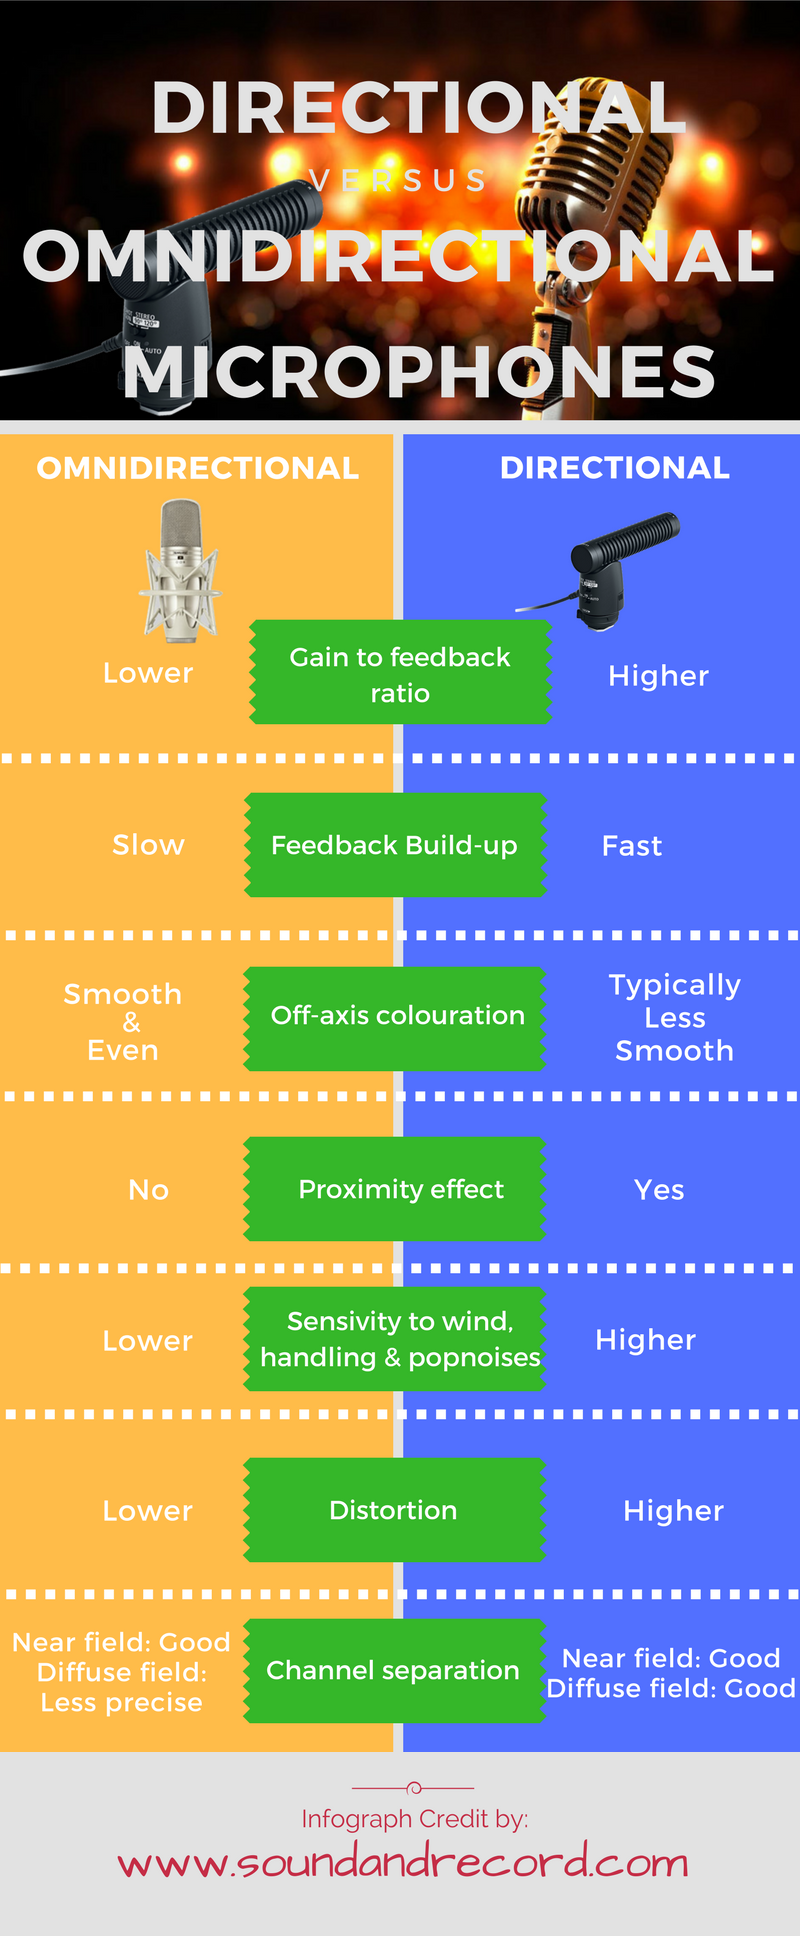 Directional Vs Omnidirectinal Microphone Infographic